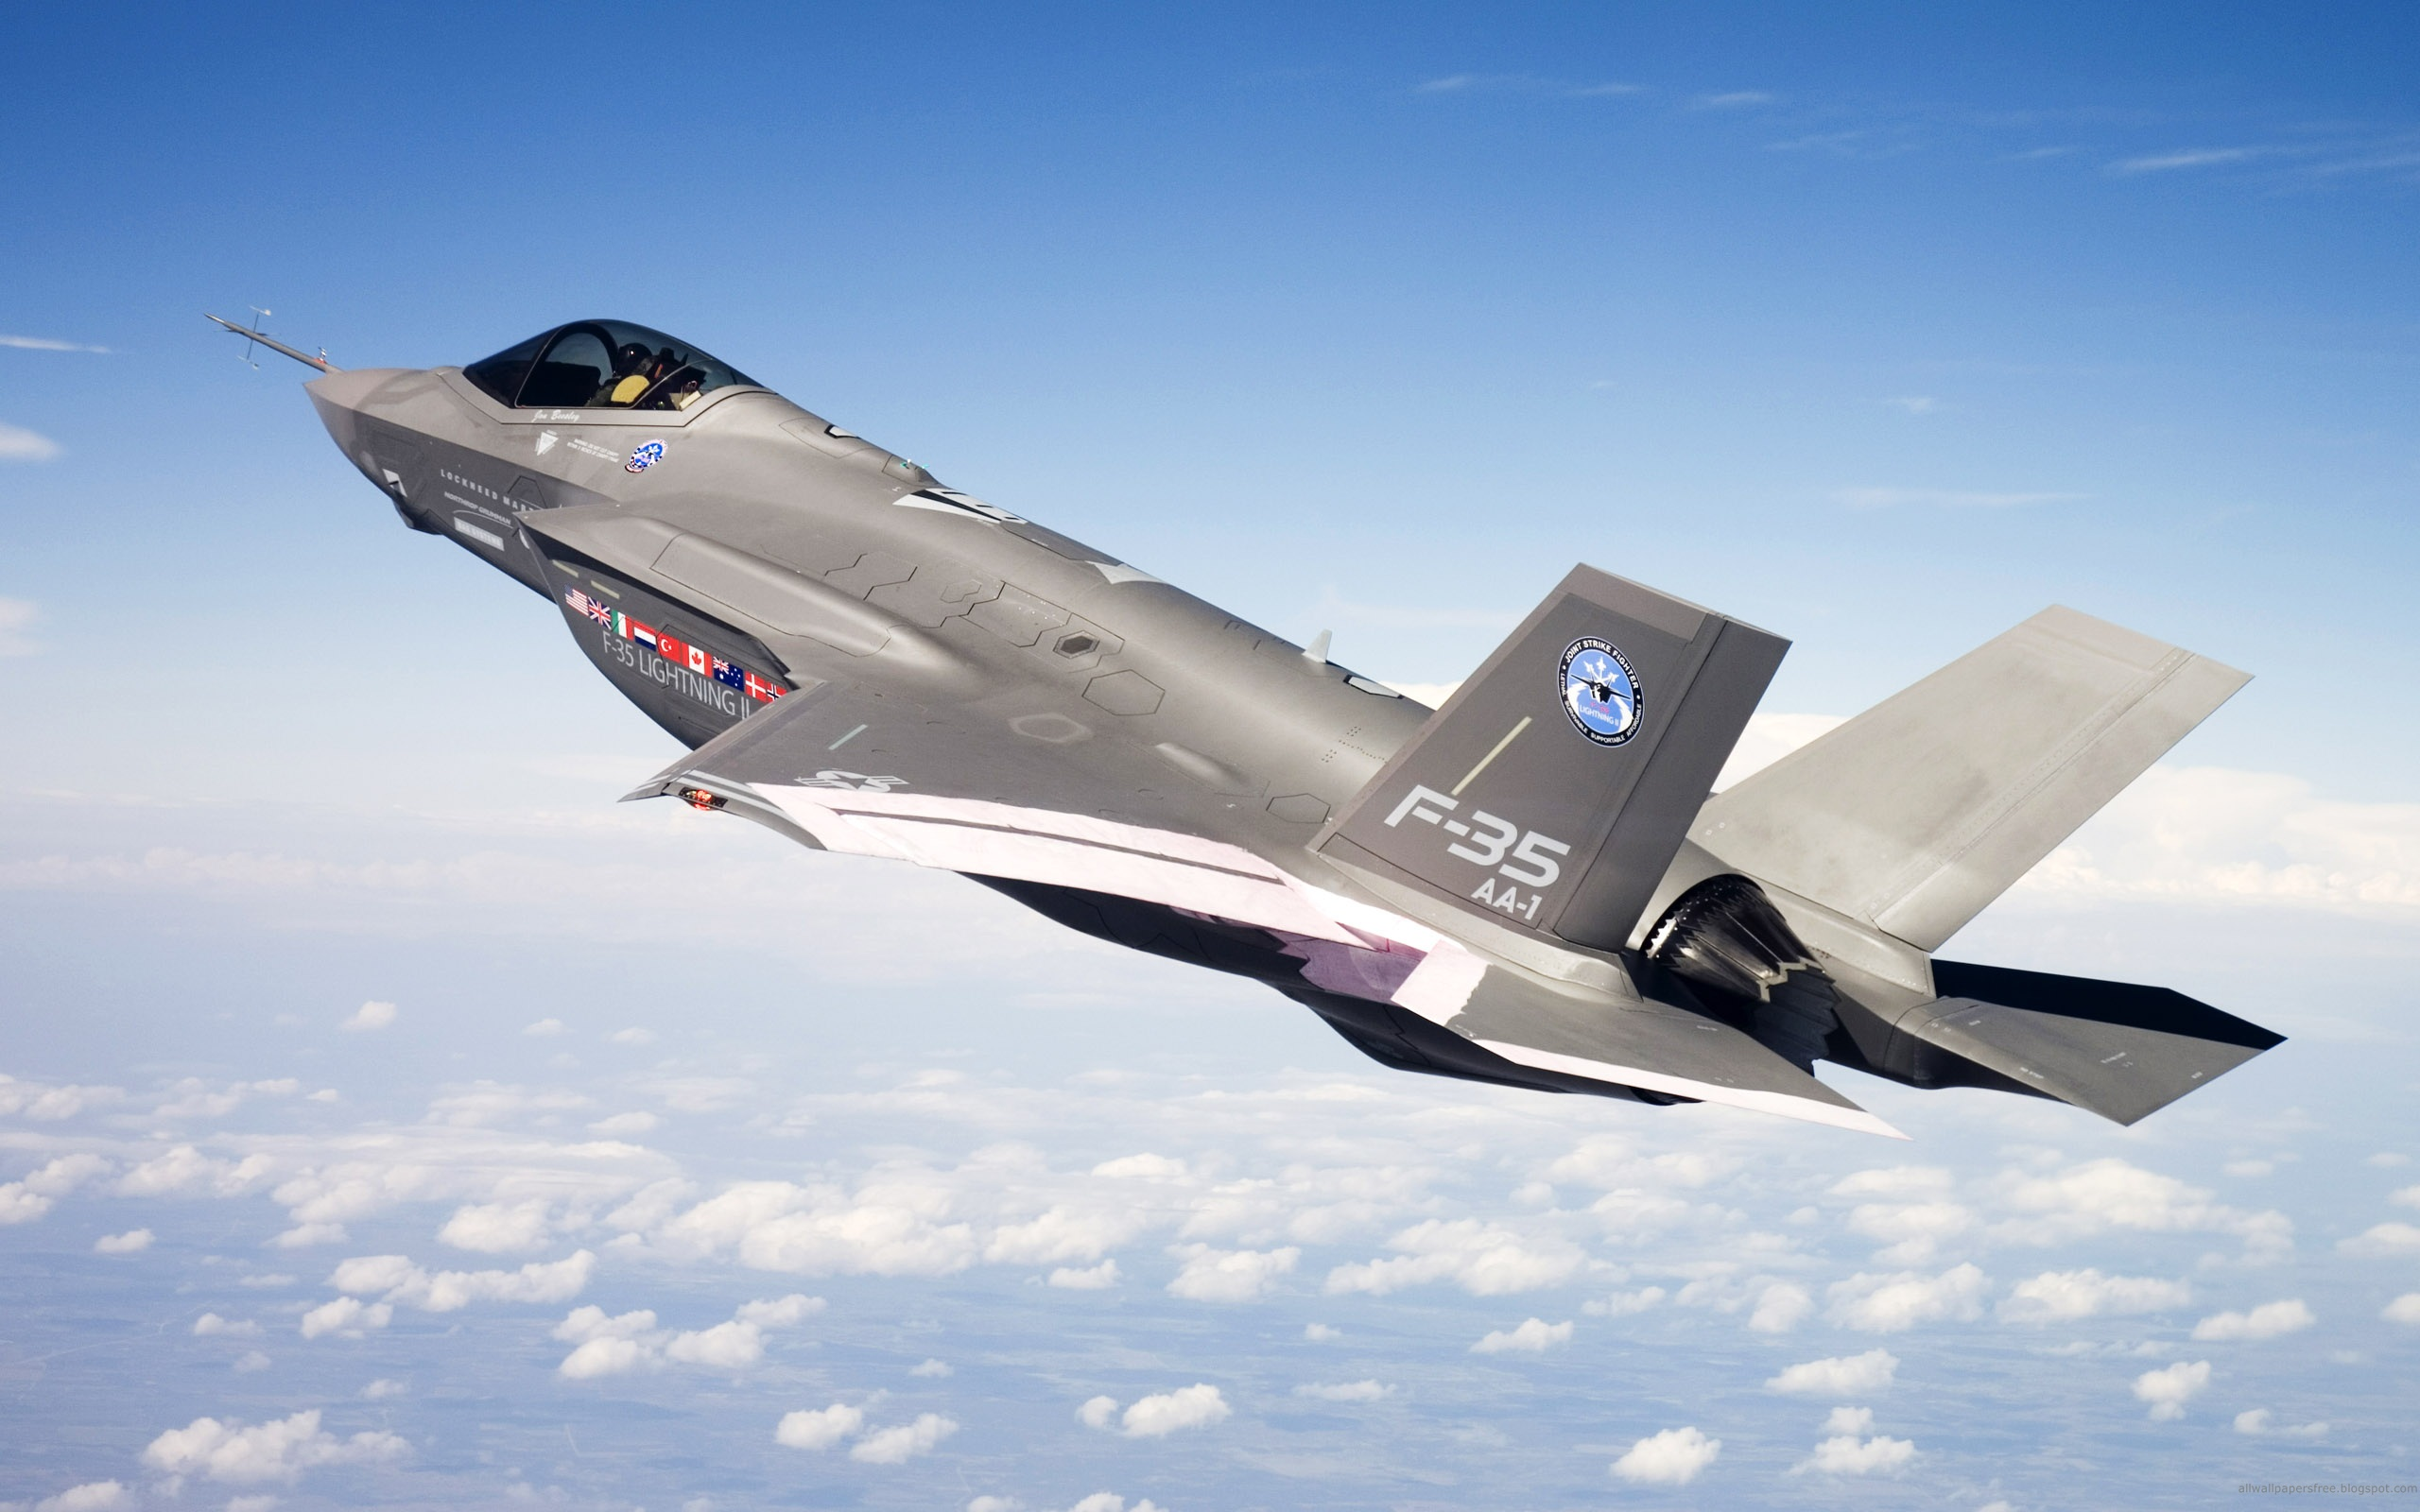 Photos of military aircraft F-35 in the sky